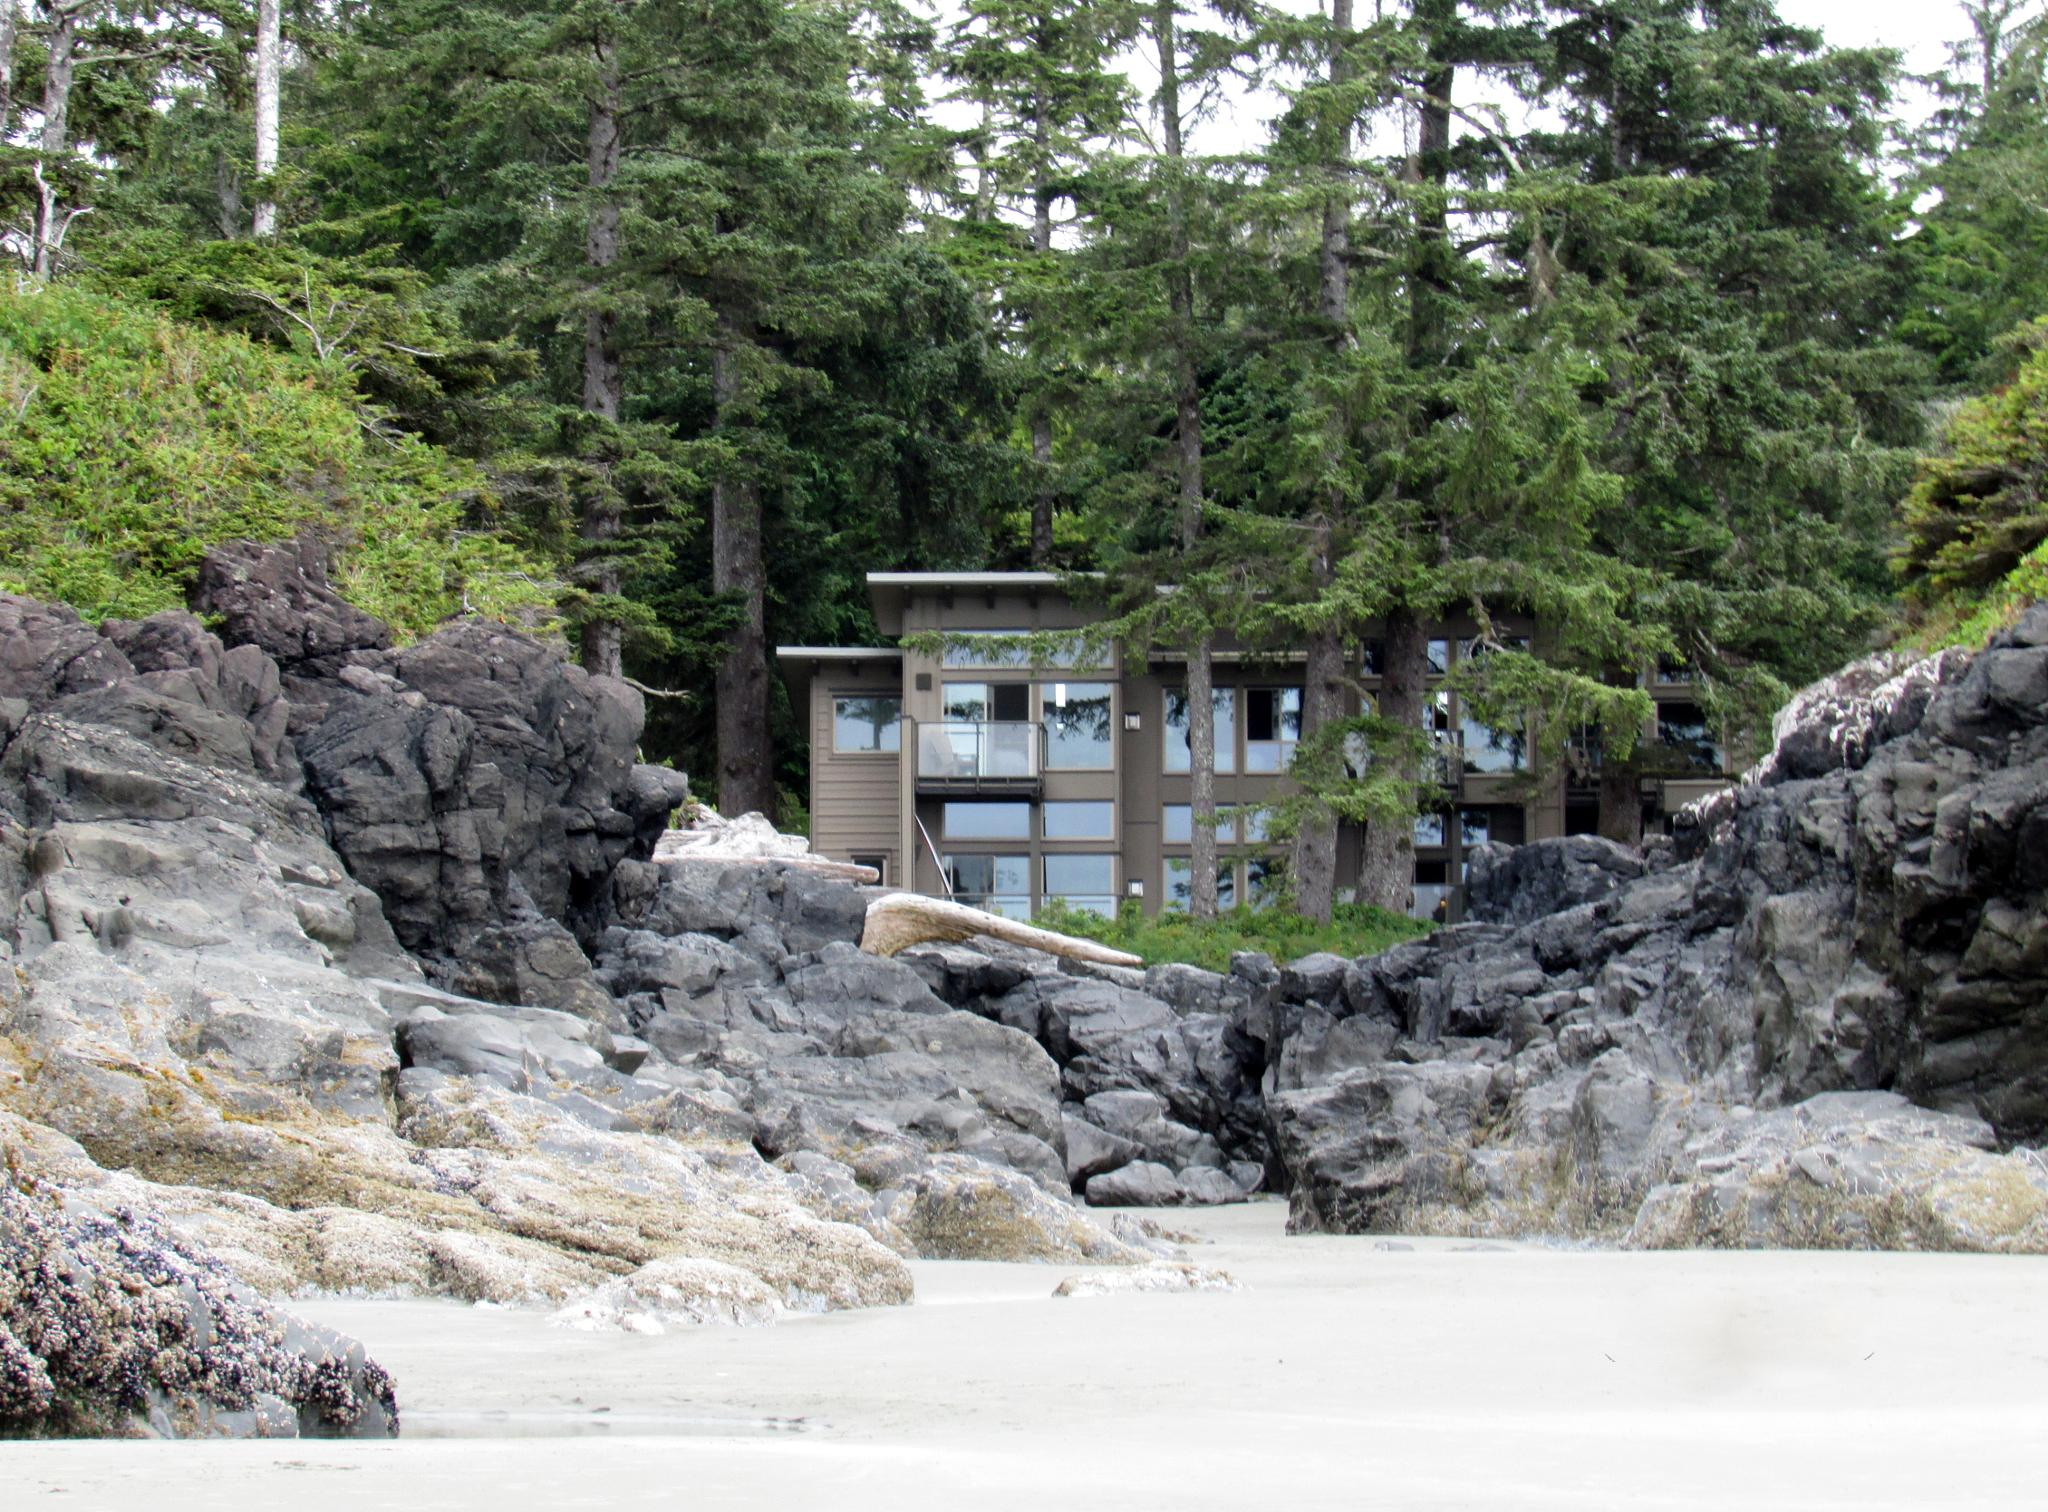 Beach House at Tofino Beach, Vancouver Island by Lisa Marshall Moore